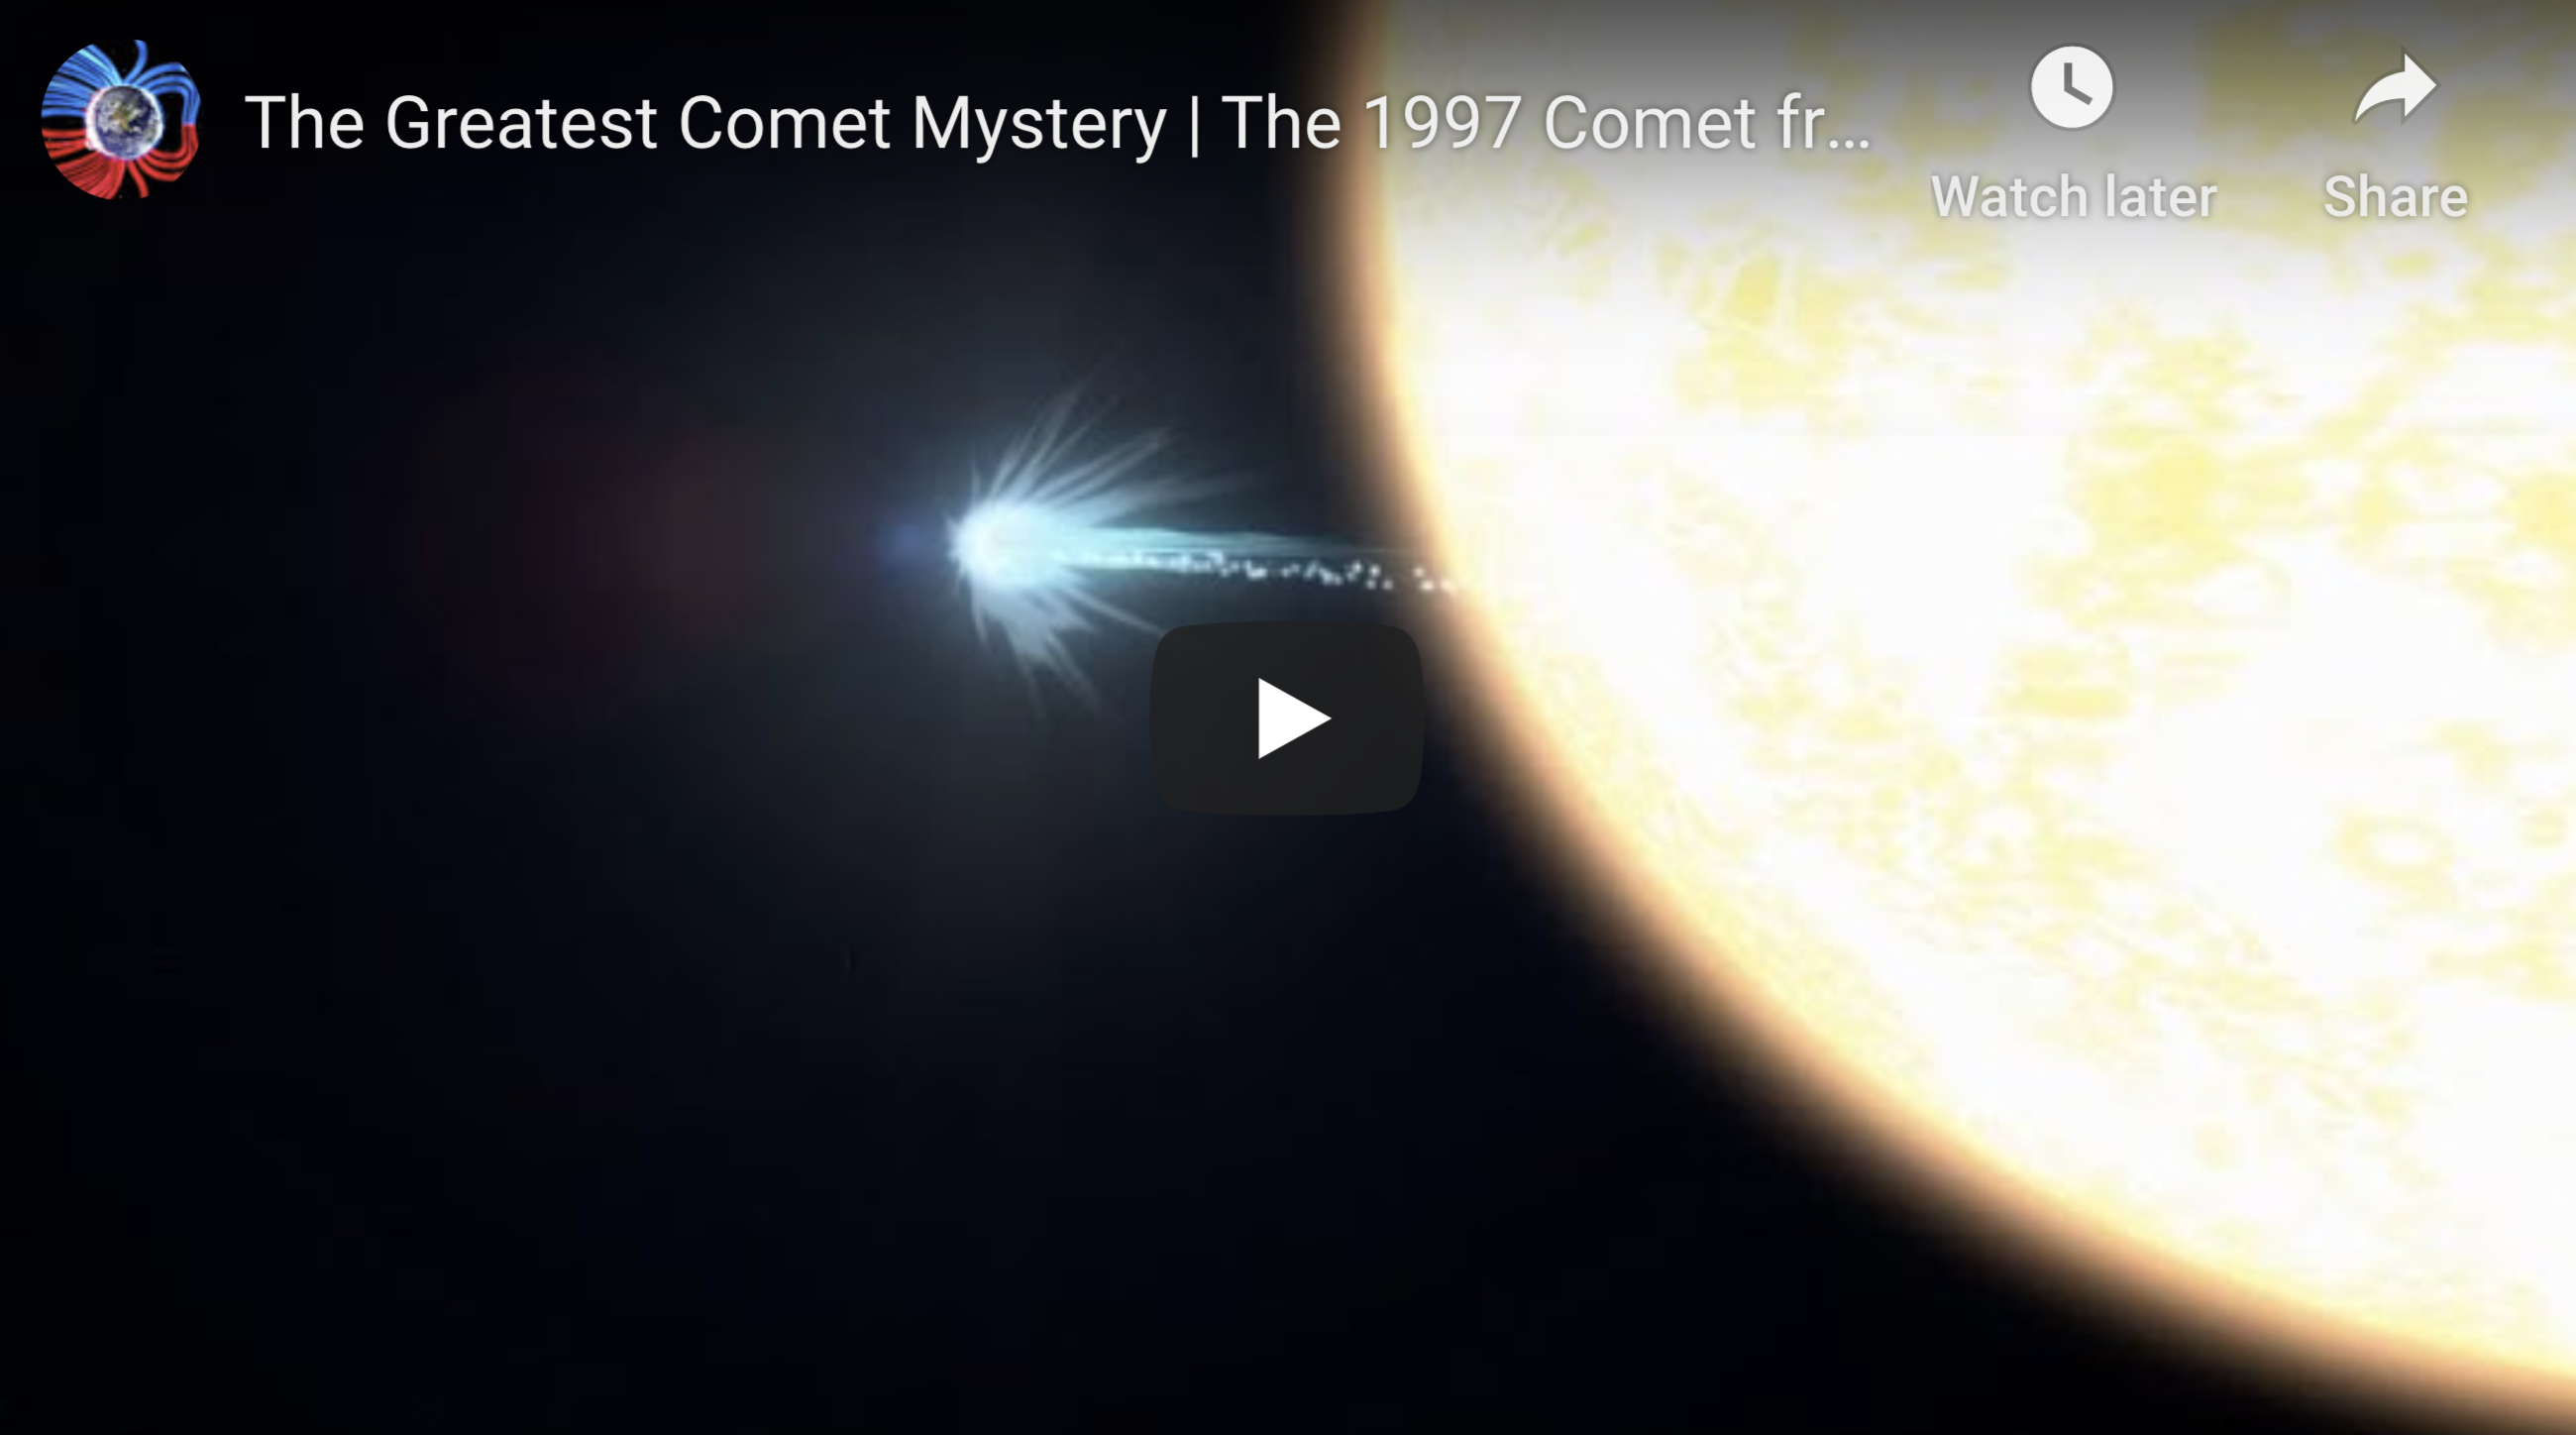 The Greatest Comet Mystery The 1997 Comet from Nowhere 4 20 2020